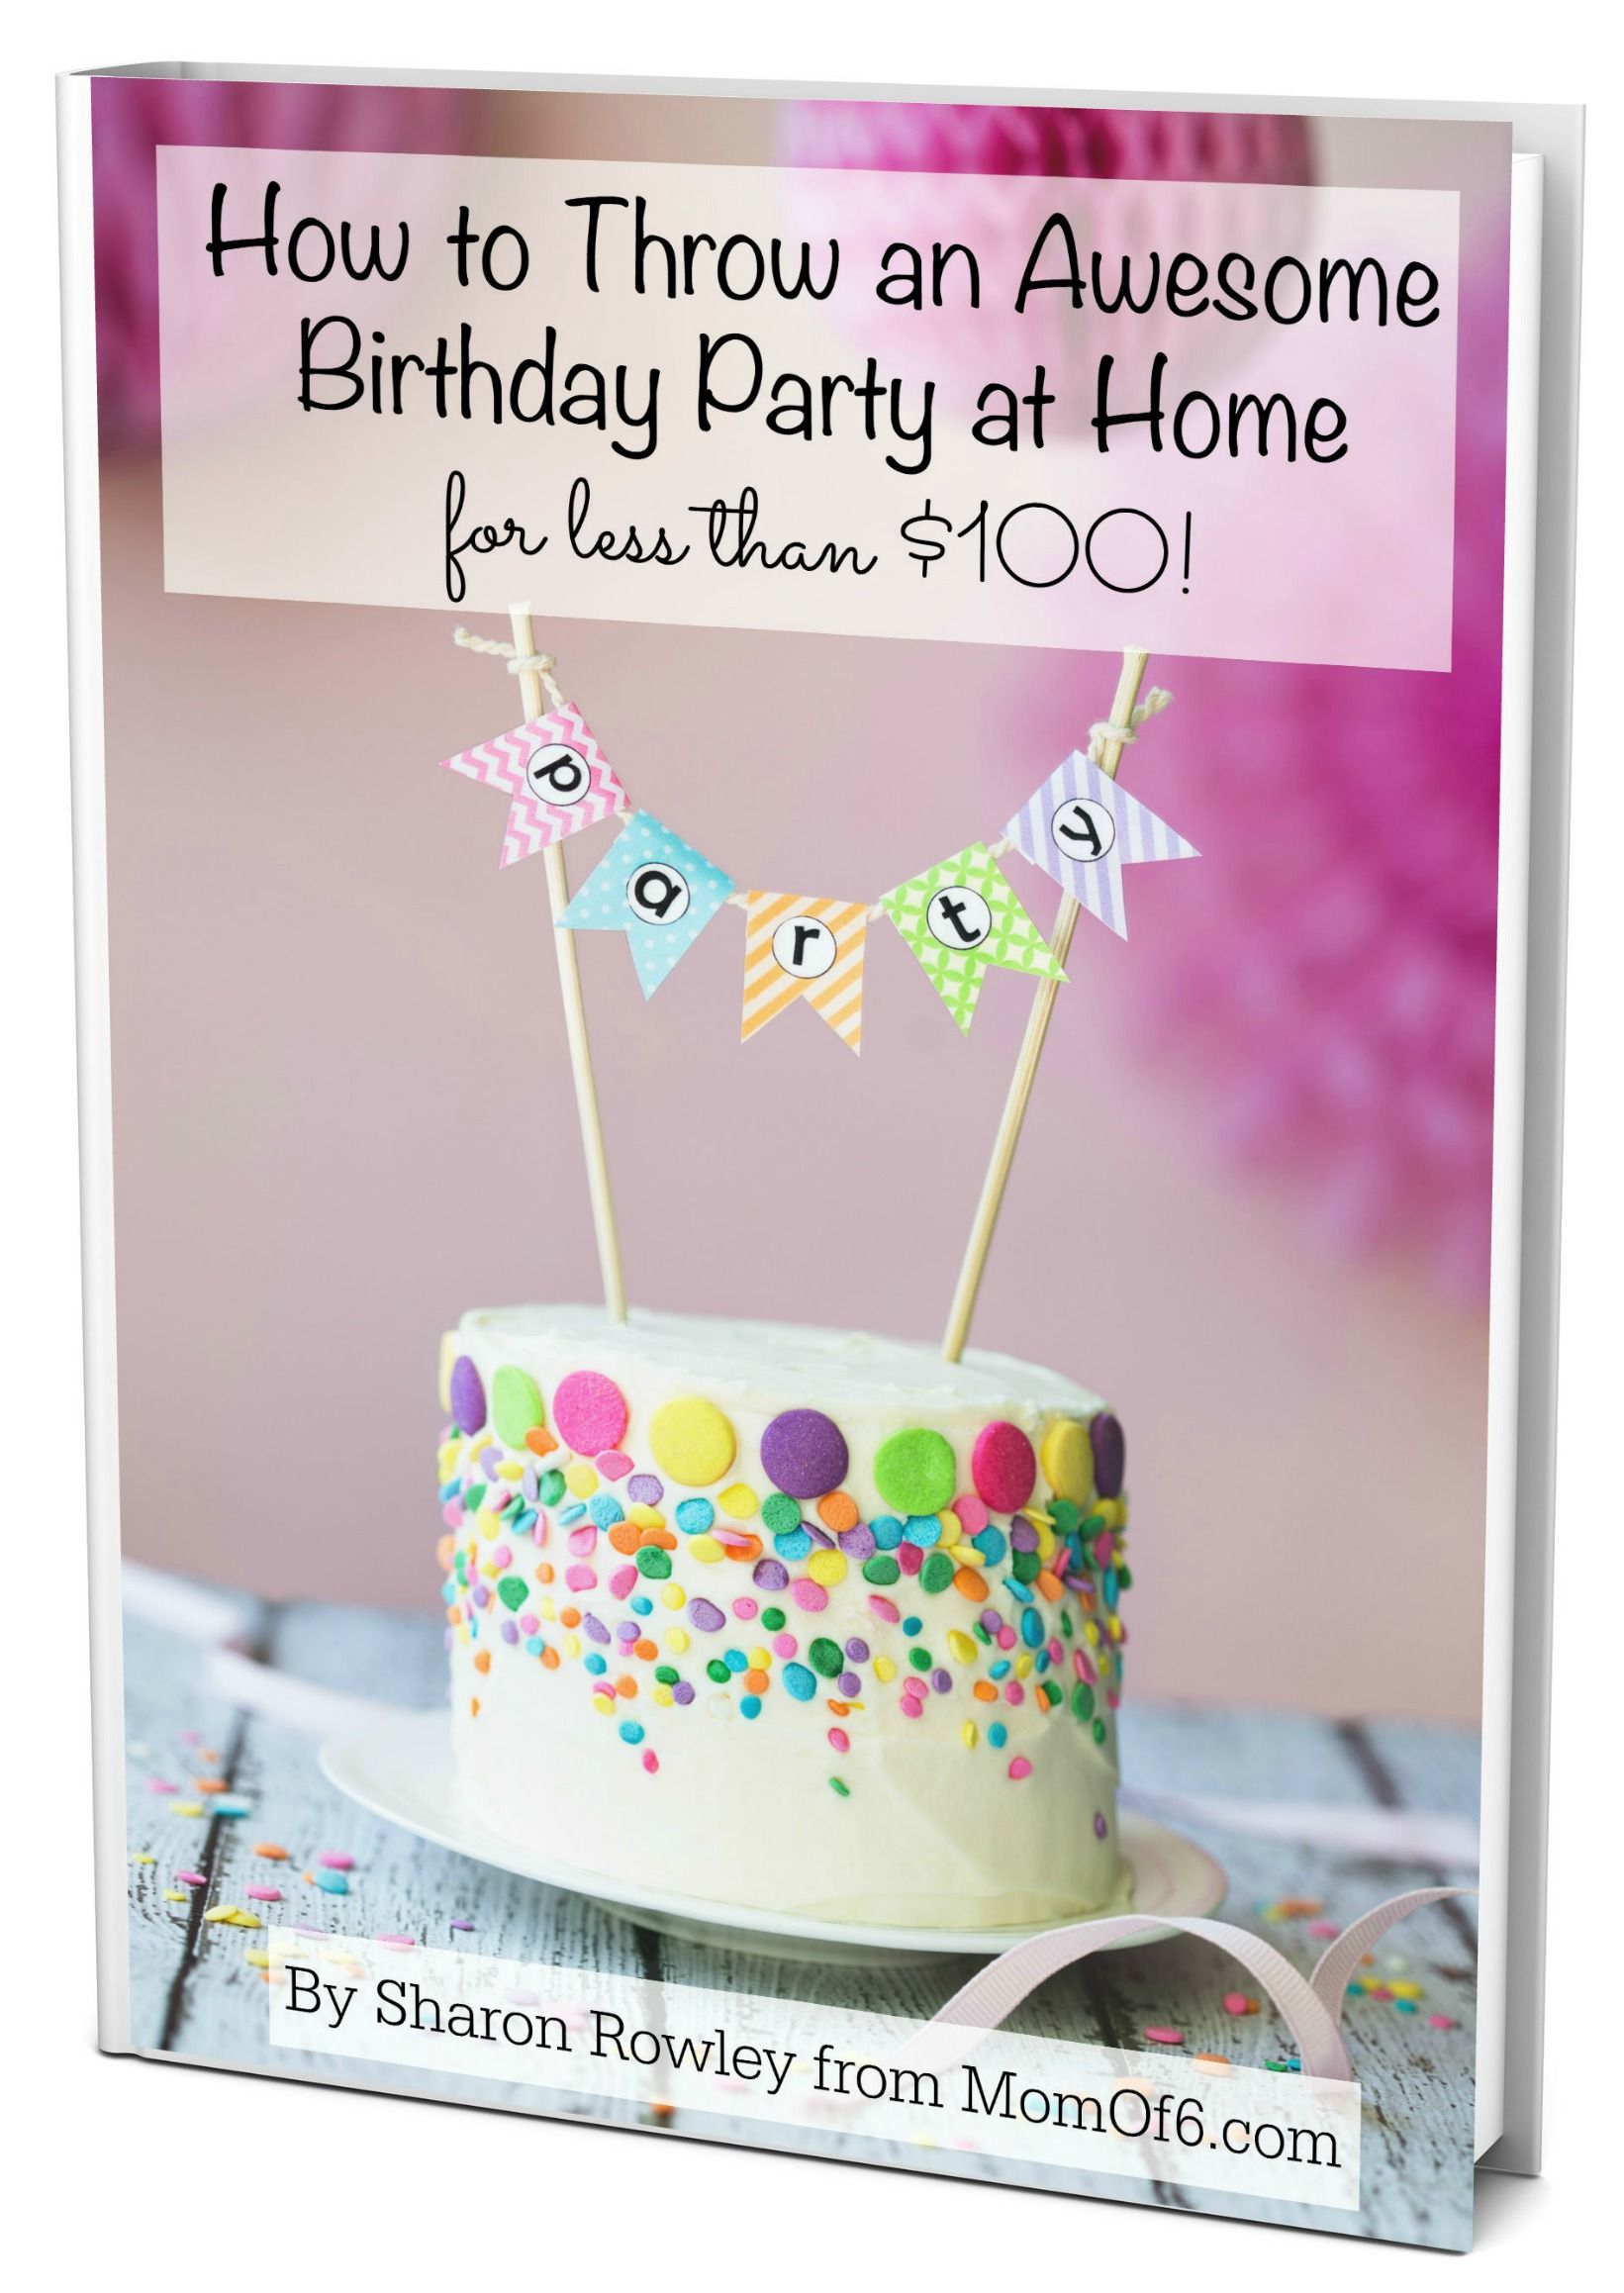 12 Awesome Birthday Party Ideas For Girls